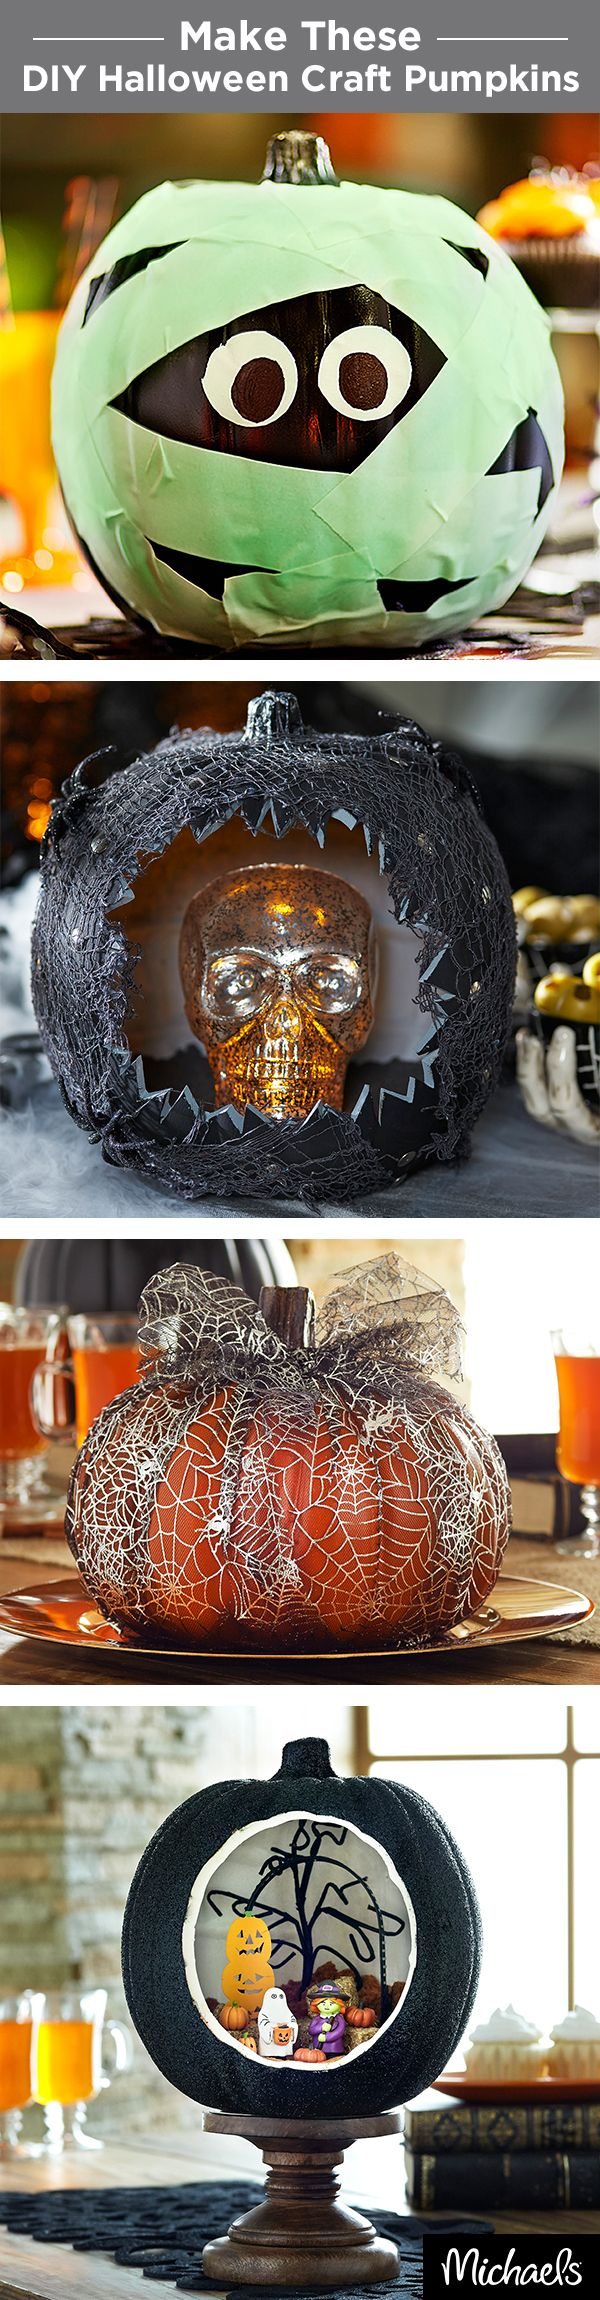 12 best Halloween images by Ginger Headley on Pinterest Halloween - michaels halloween decorations